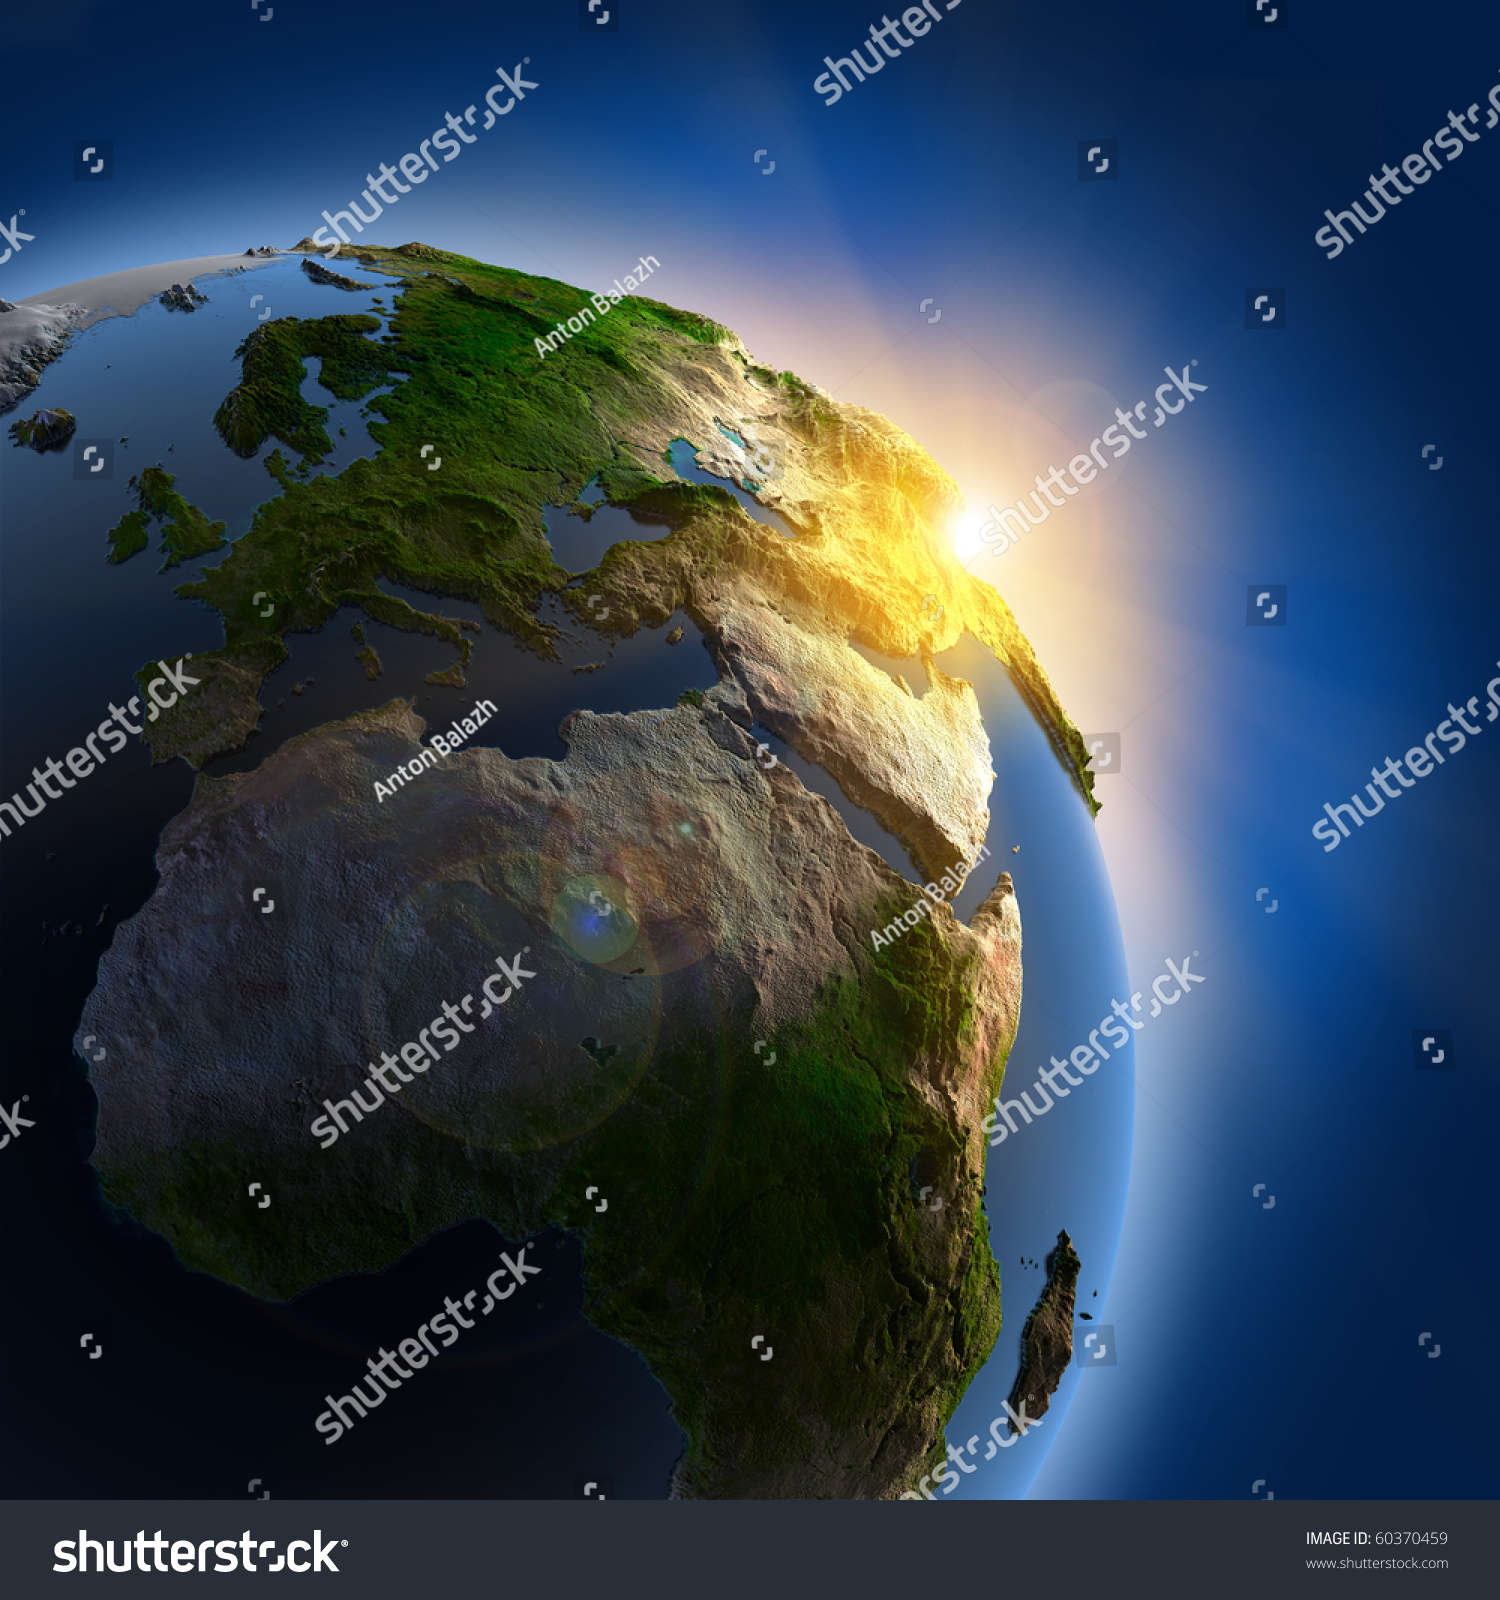 Suns rays rising sun illuminate earth stock illustration for 3d map of outer space